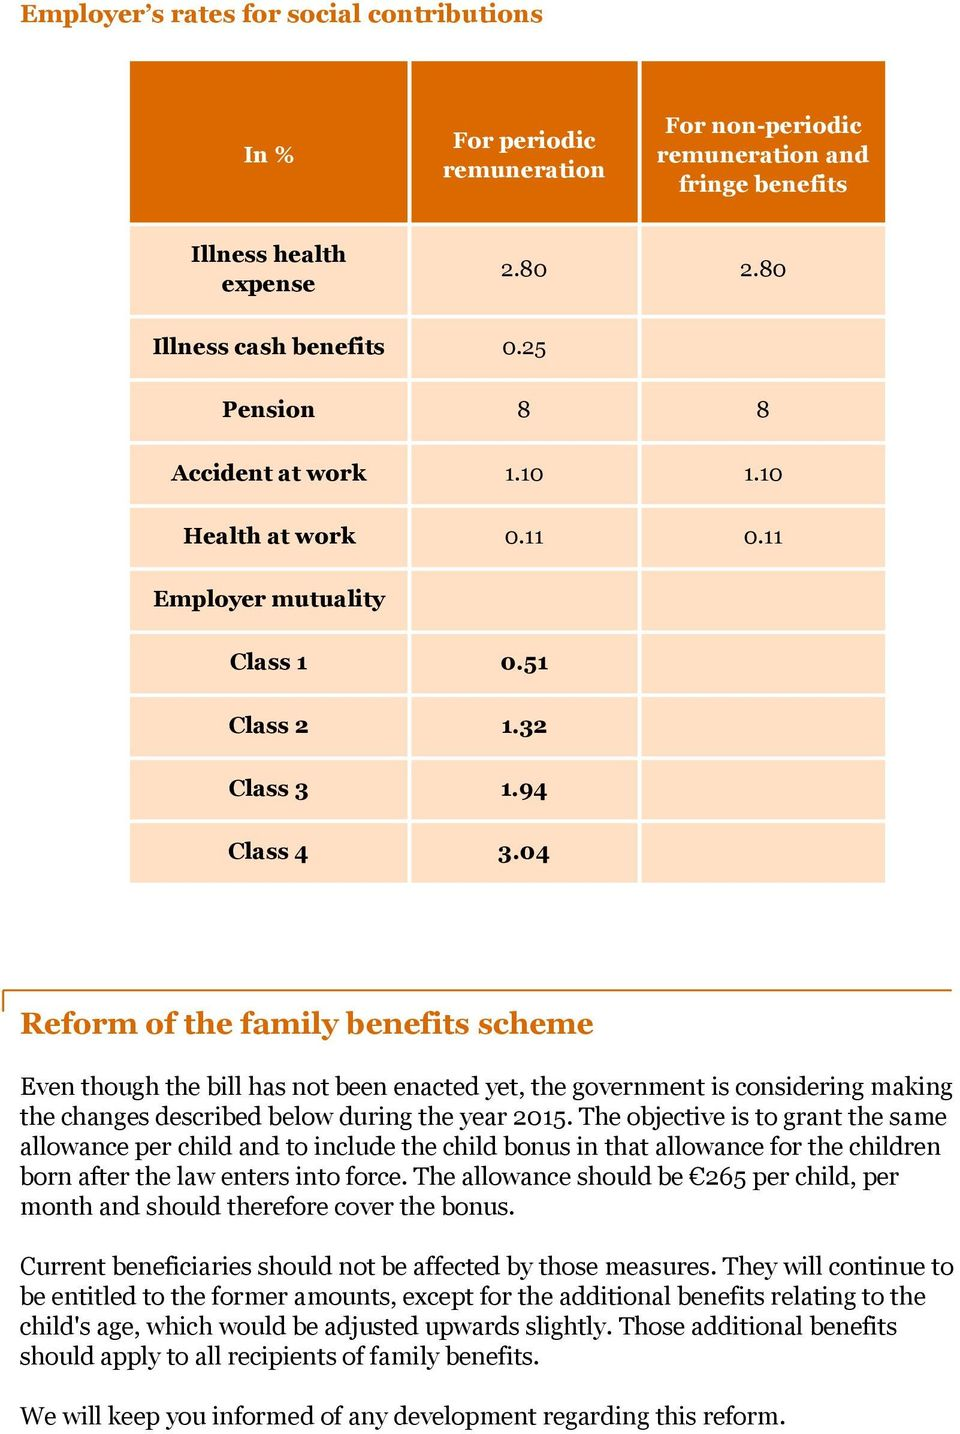 04 Reform of the family benefits scheme Even though the bill has not been enacted yet, the government is considering making the changes described below during the year 2015.